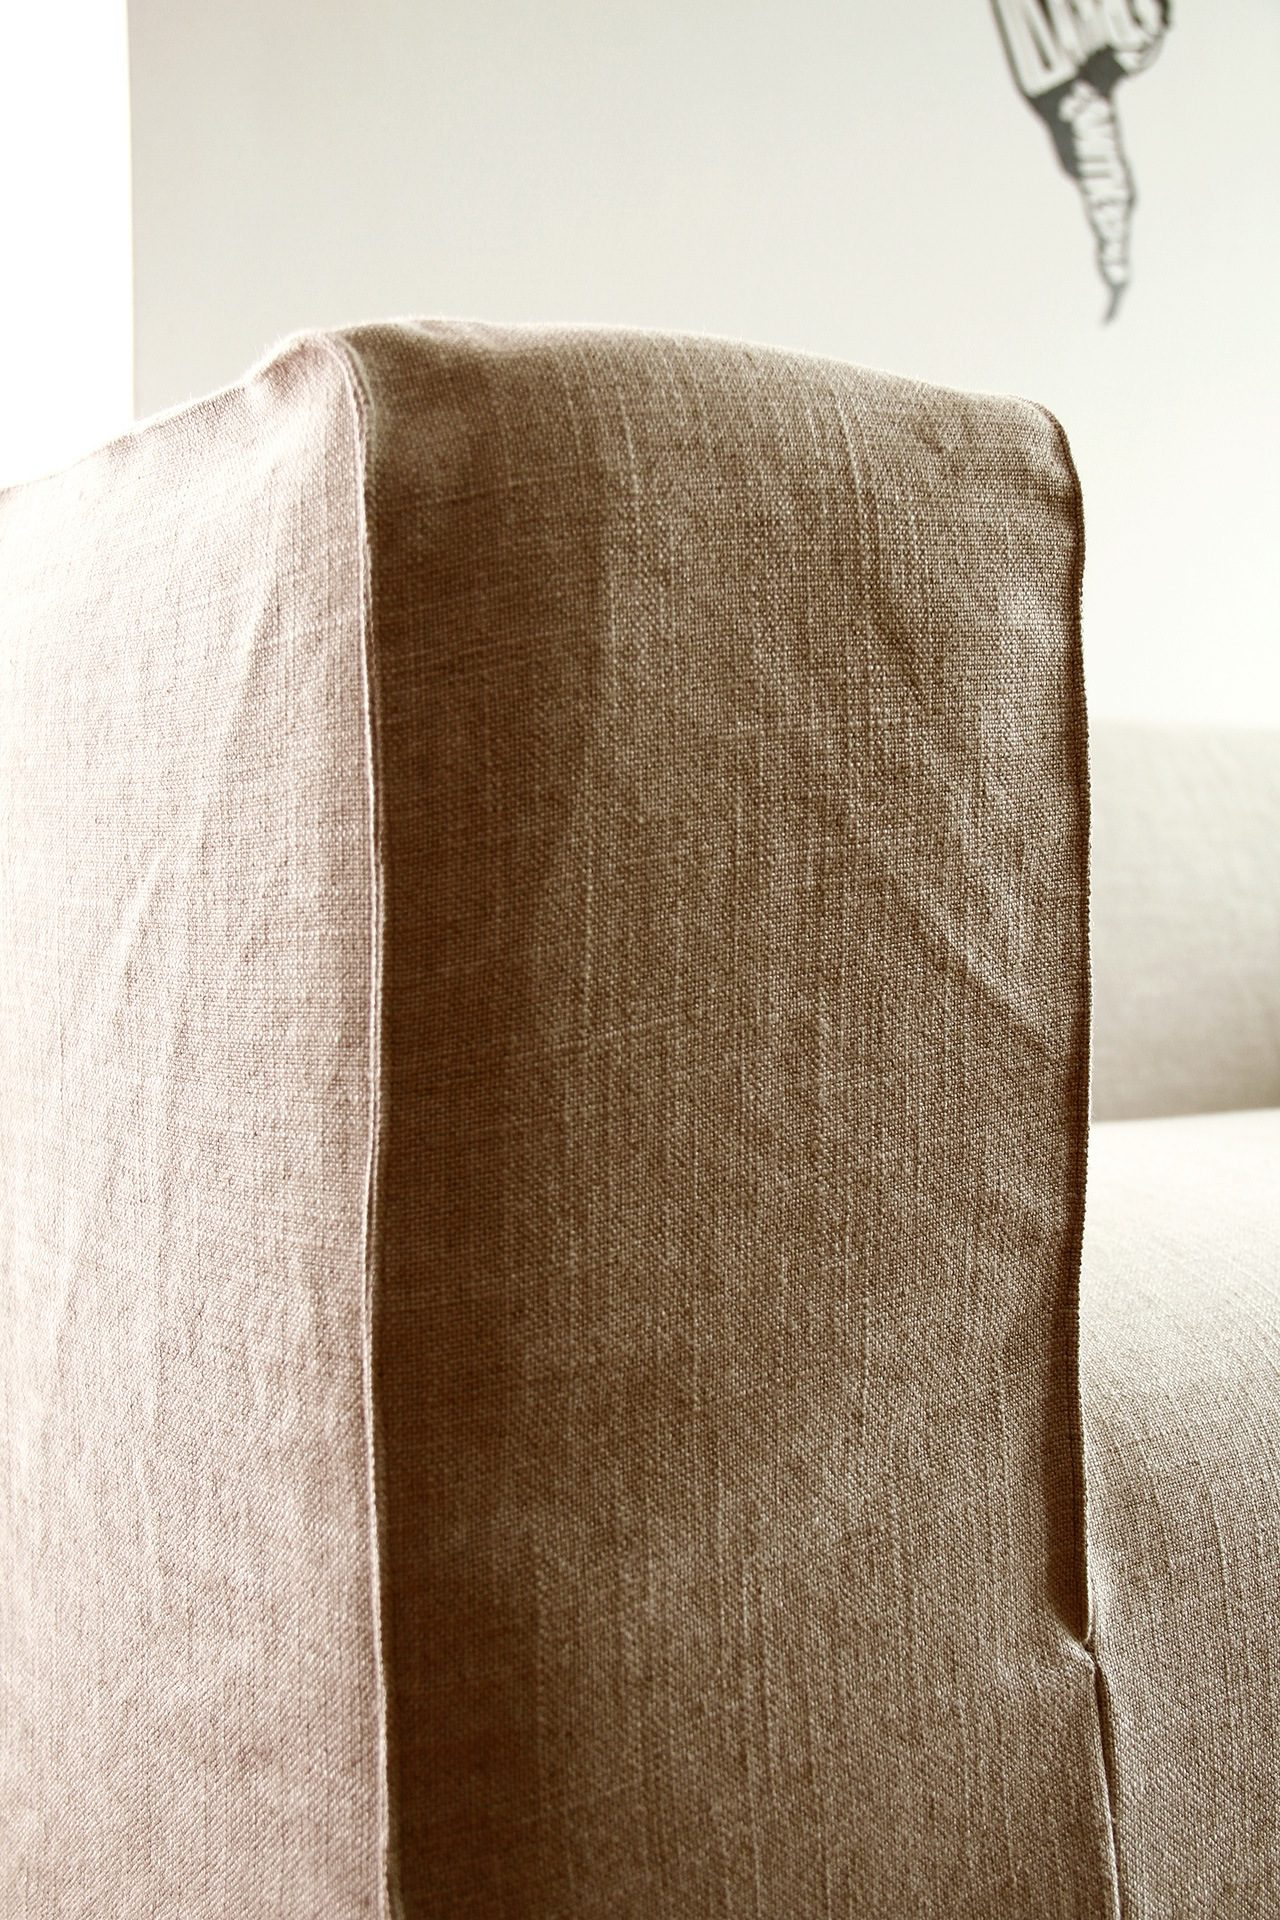 Spruce up your IKEA Klippan Sofa Cover in a Loose Linen Slipcover